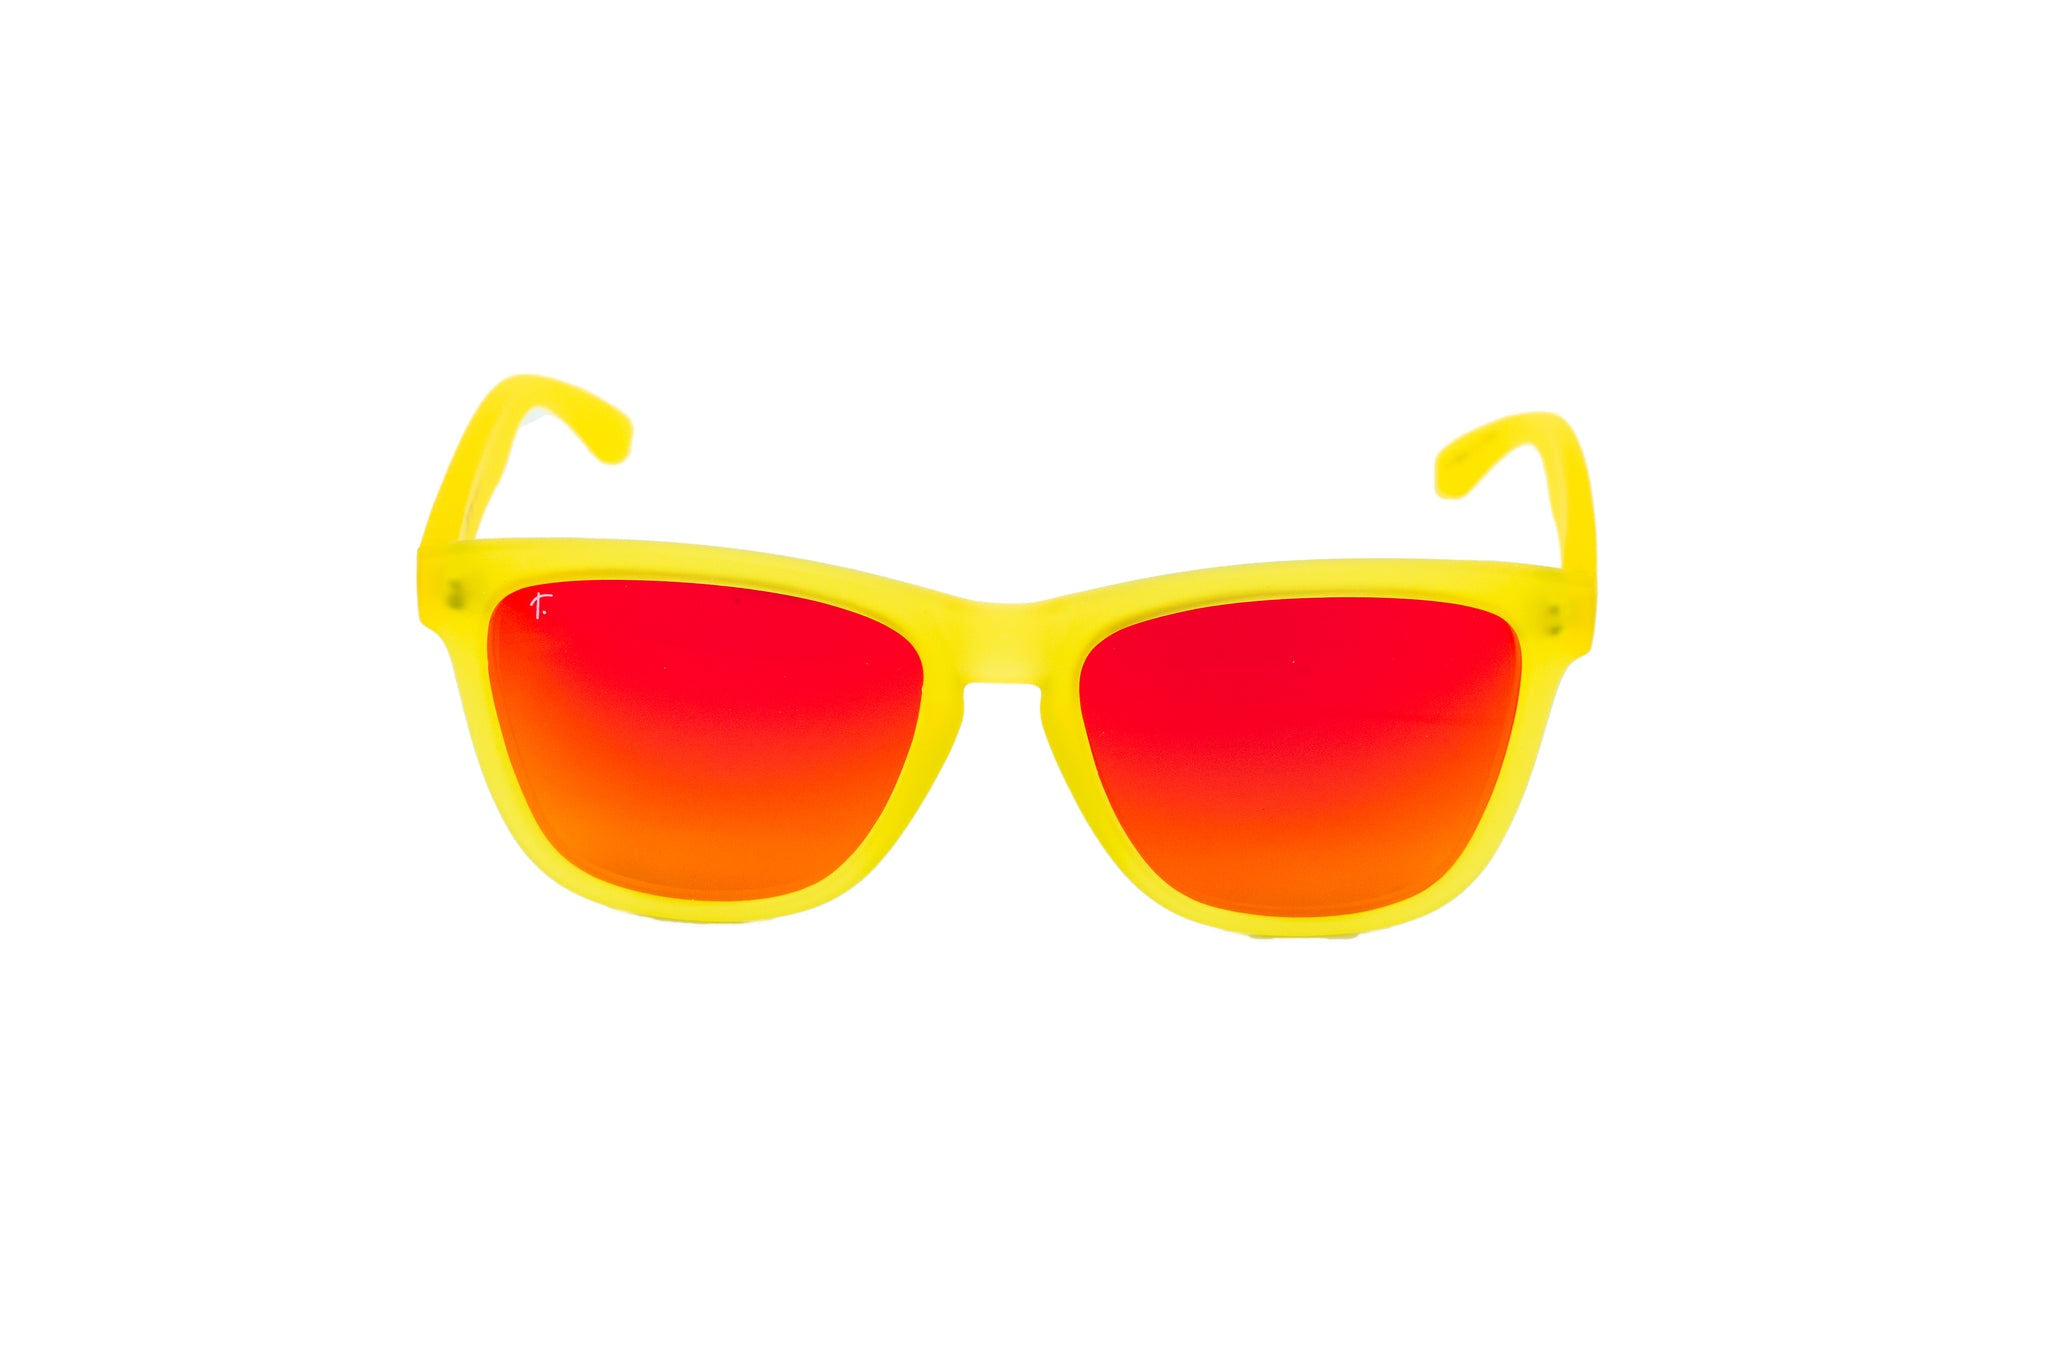 93a3b6fc278 ... womens running sunglasses. yellow  red mirrored lens sunglasses. polarized  sunglasses. sunglasses for ...